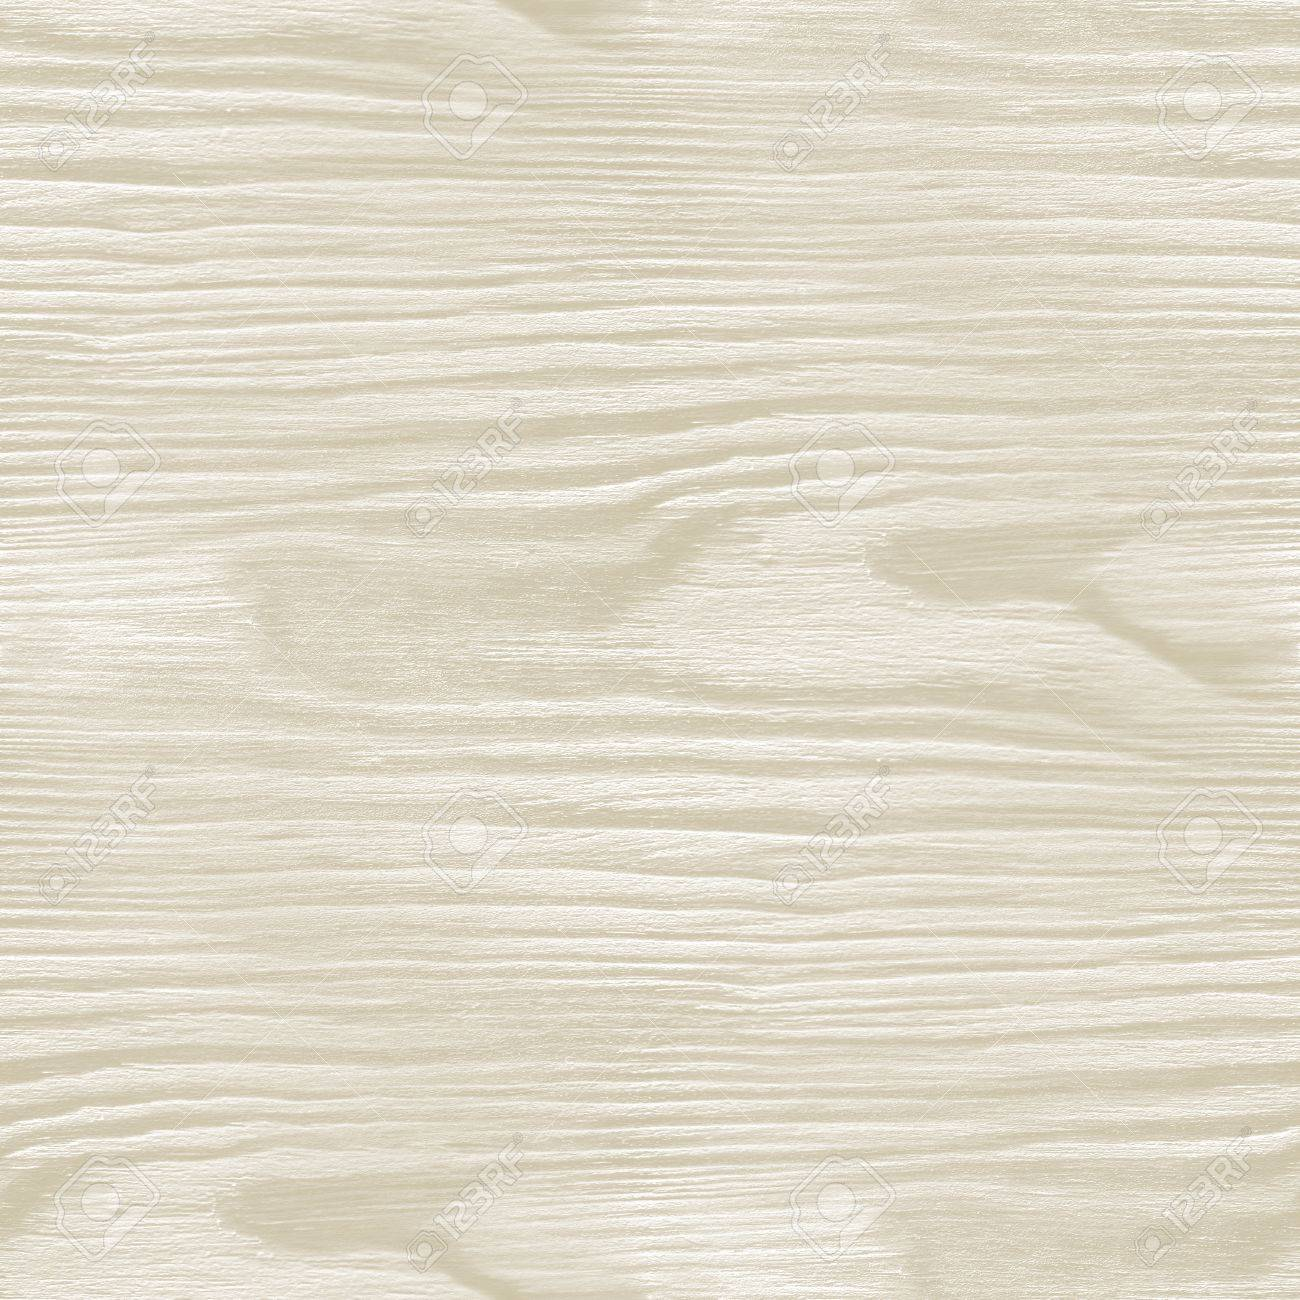 White Wood Vintage Seamless Pattern Grain Texture Old Wood Stock